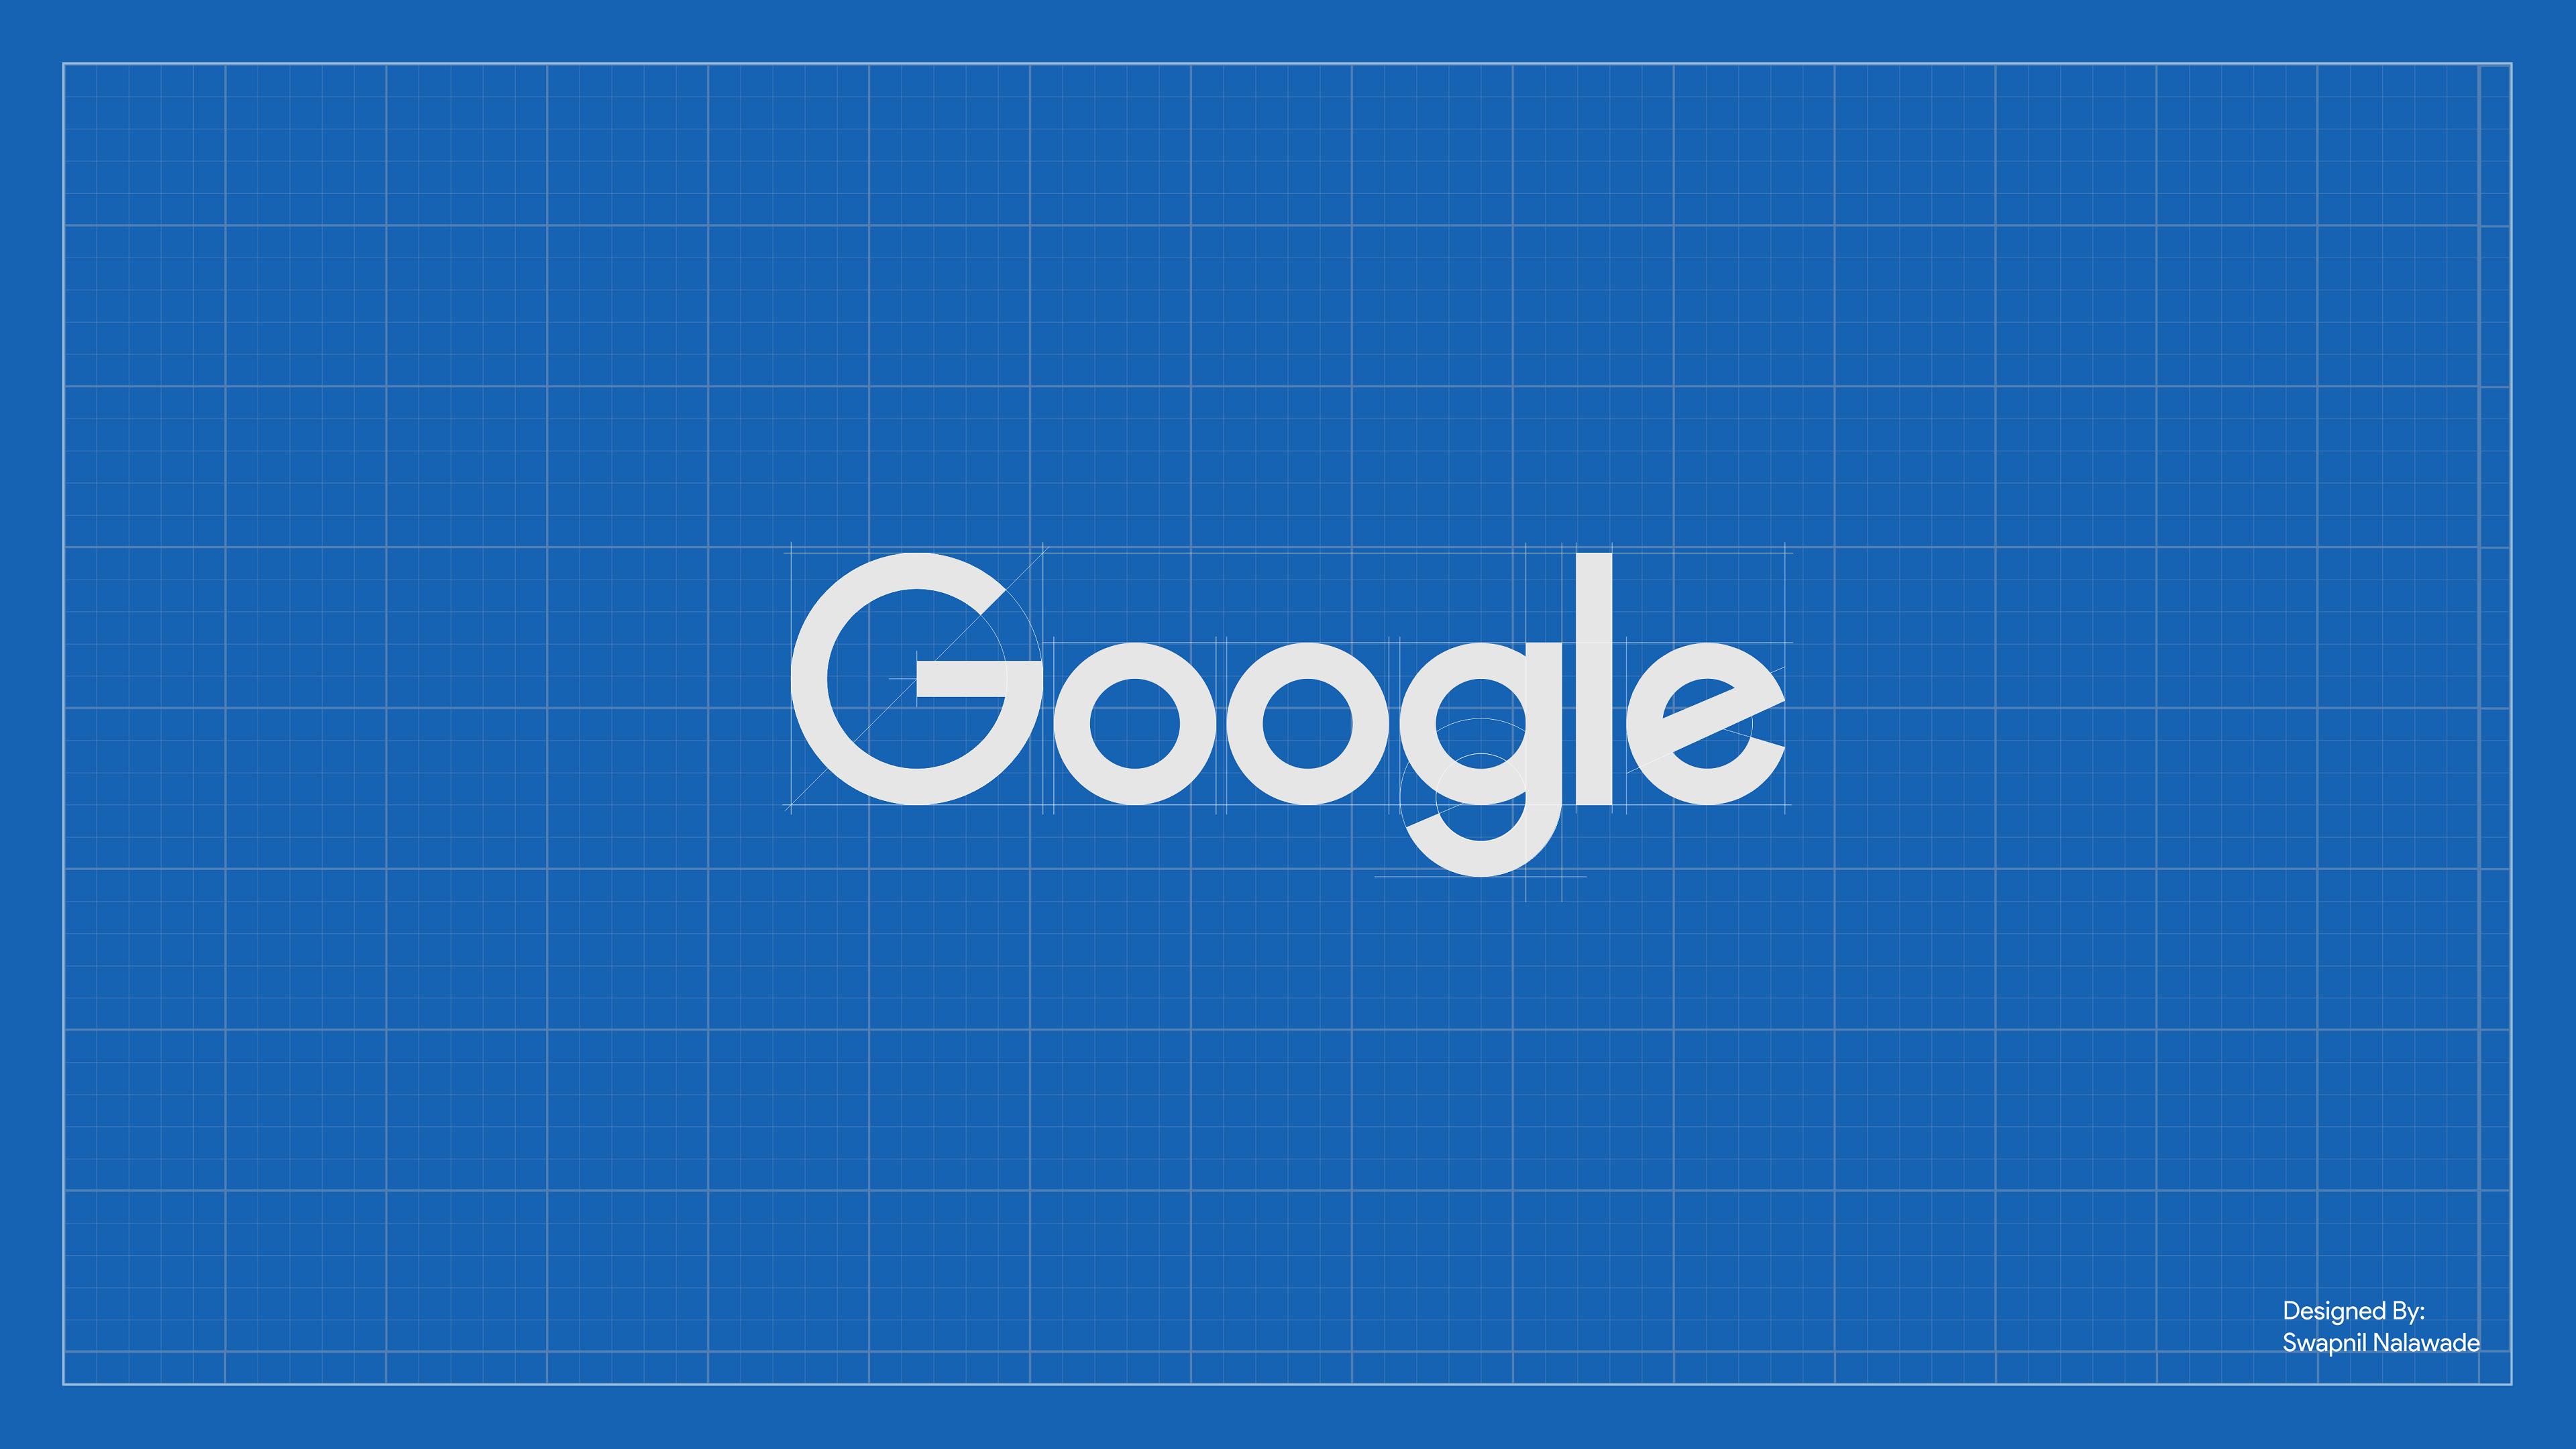 Google Logo Blueprint 4K Wallpaper 16:9 4k Ultra HD Wallpaper and ...